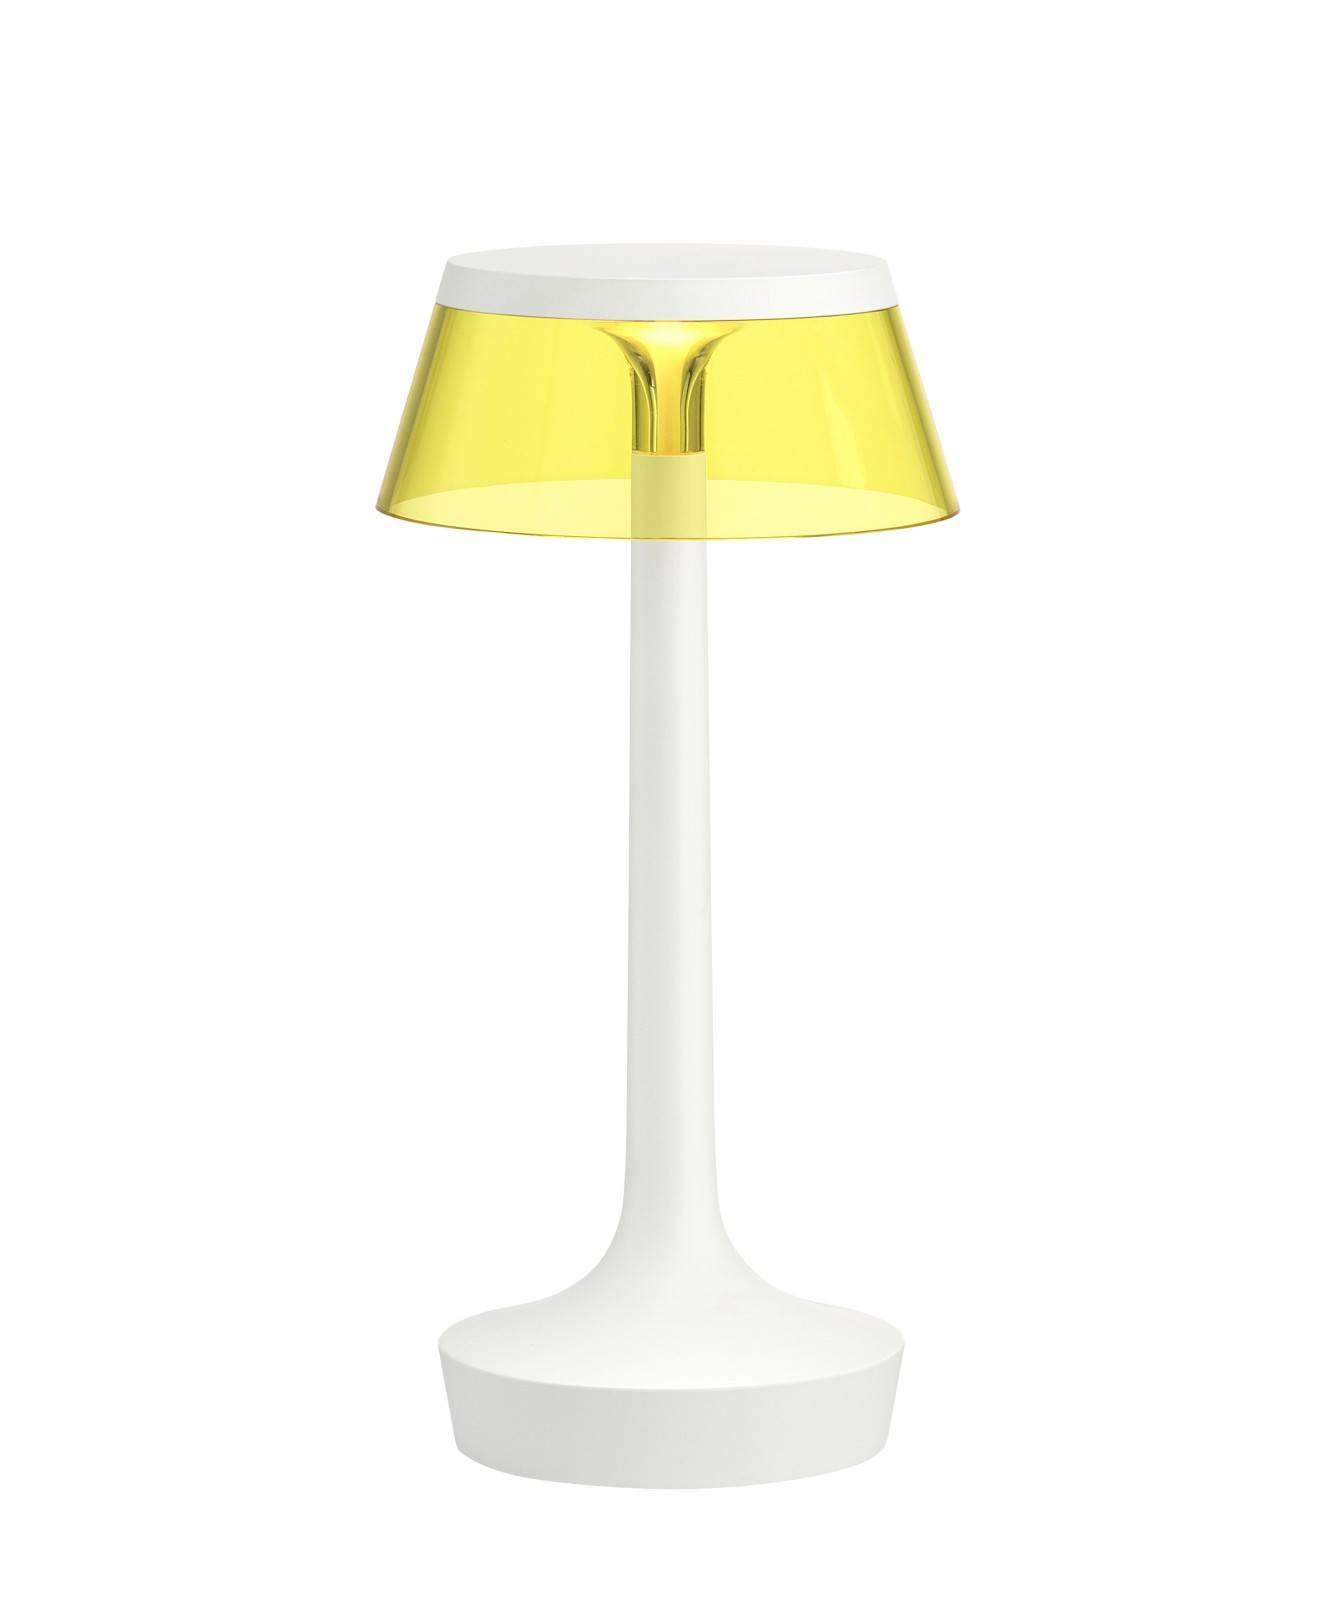 Bon Jour Unplugged Table Lamp White, Yellow shade